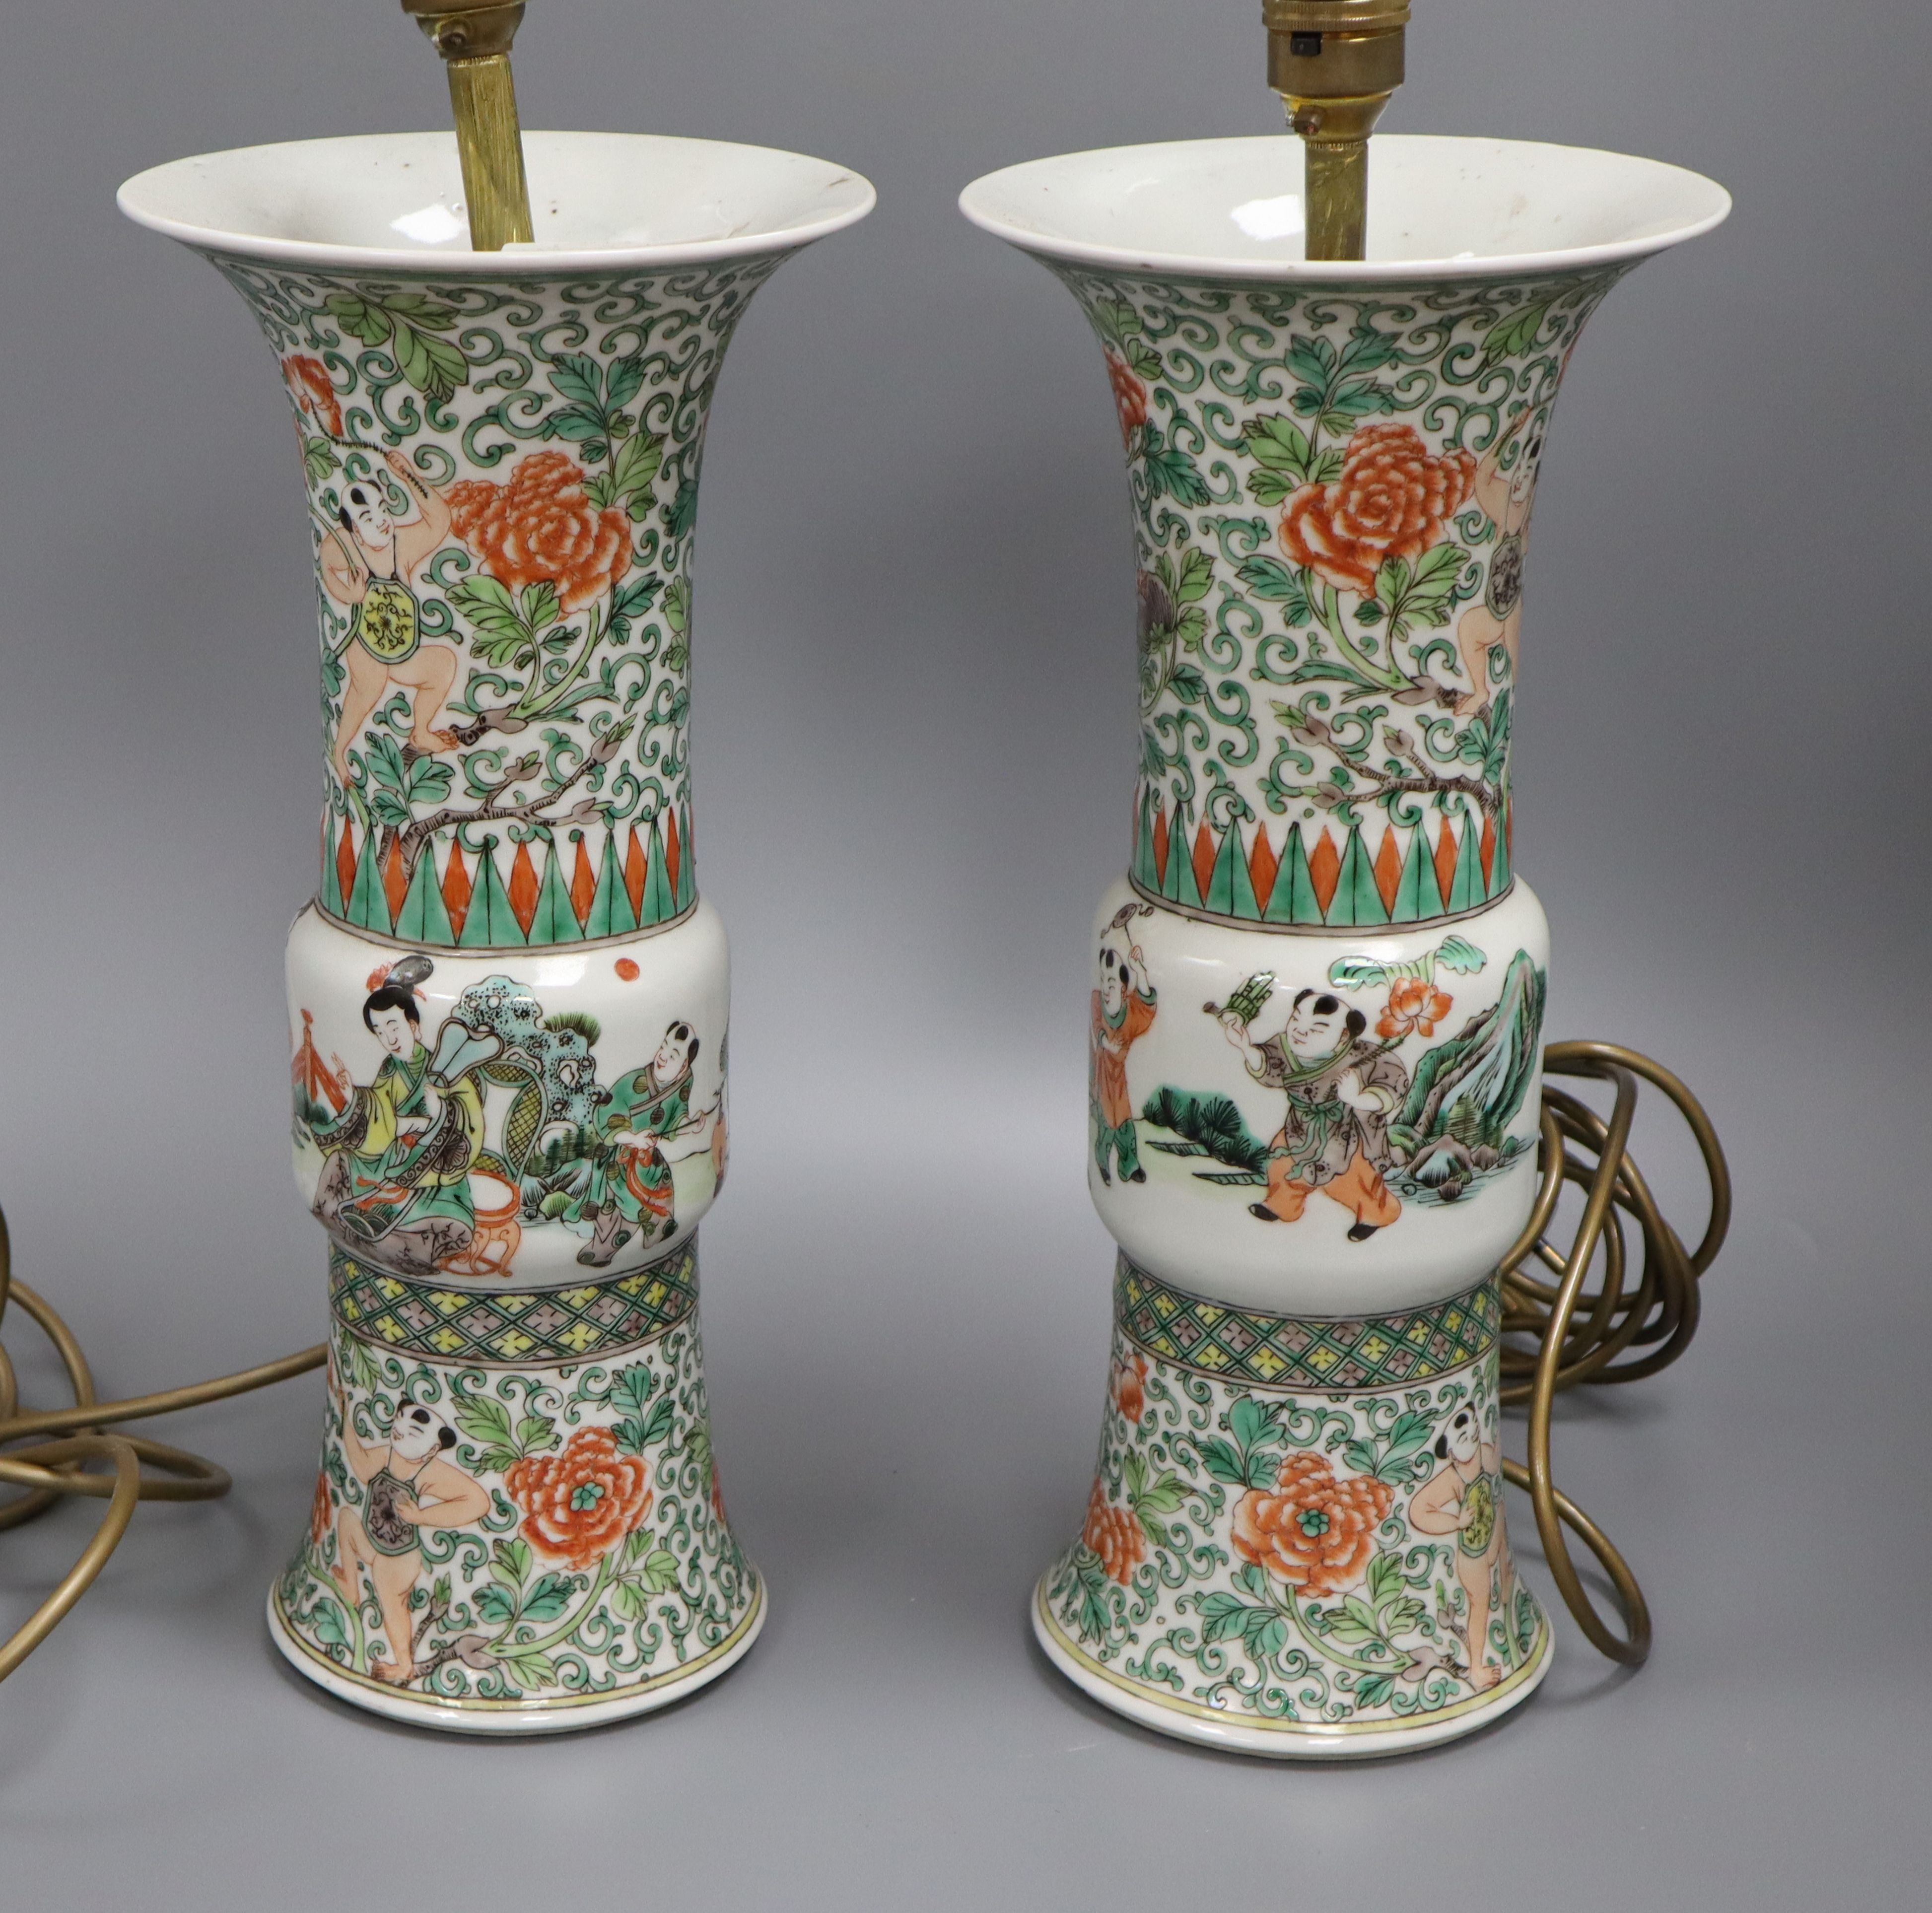 Lot 40 - A pair of late 18th century Chinese famille verte vases mounted as table lamps height 36cm